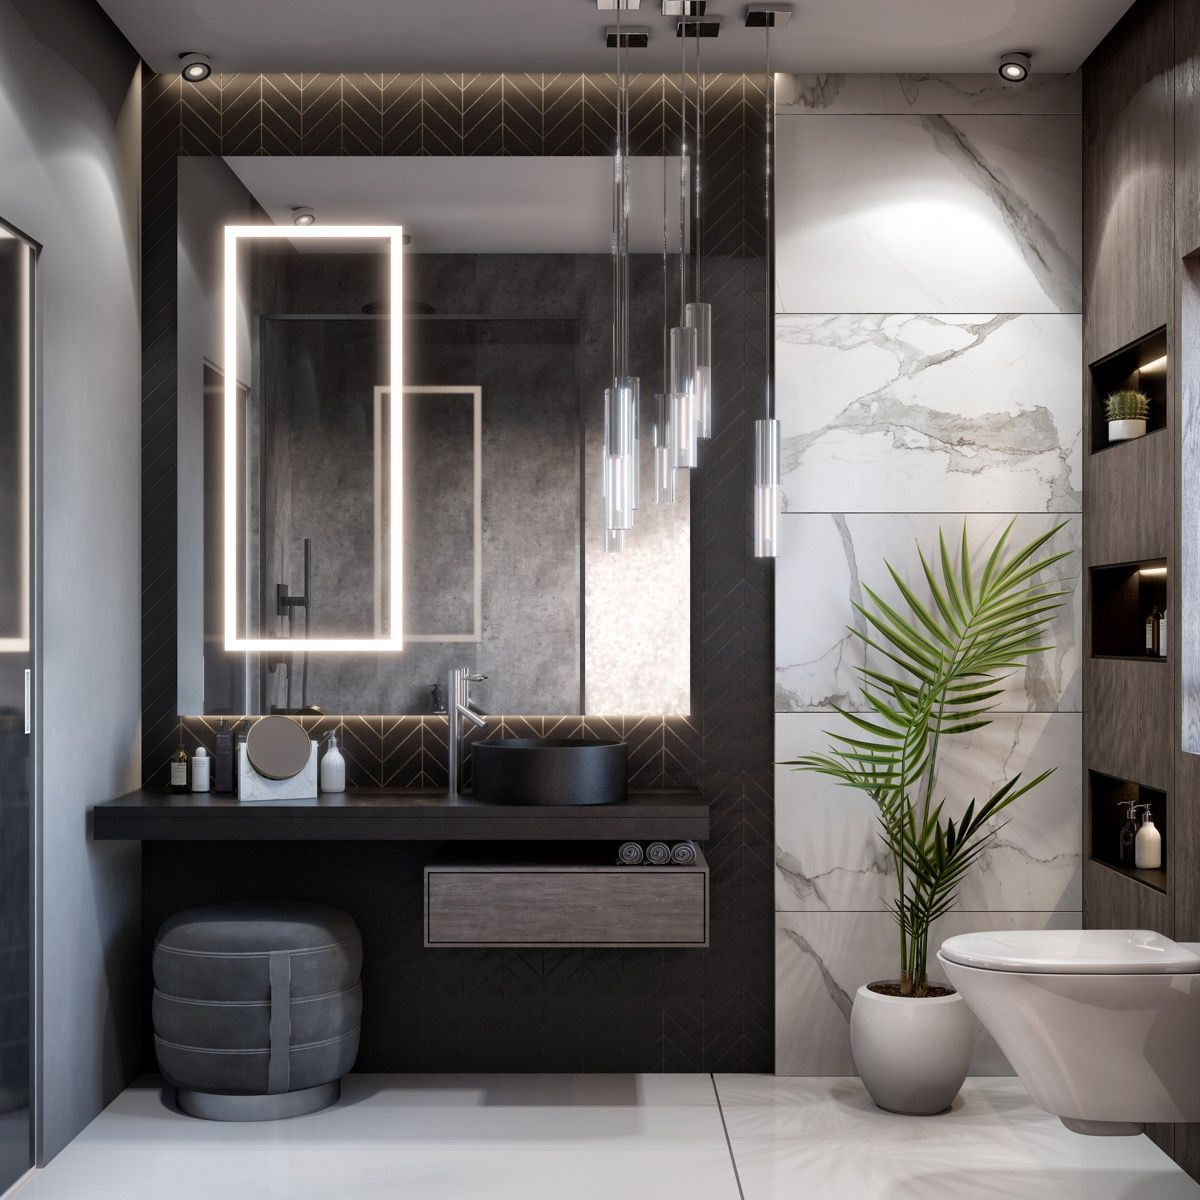 51 Modern Bathroom Design Ideas Plus Tips On How To